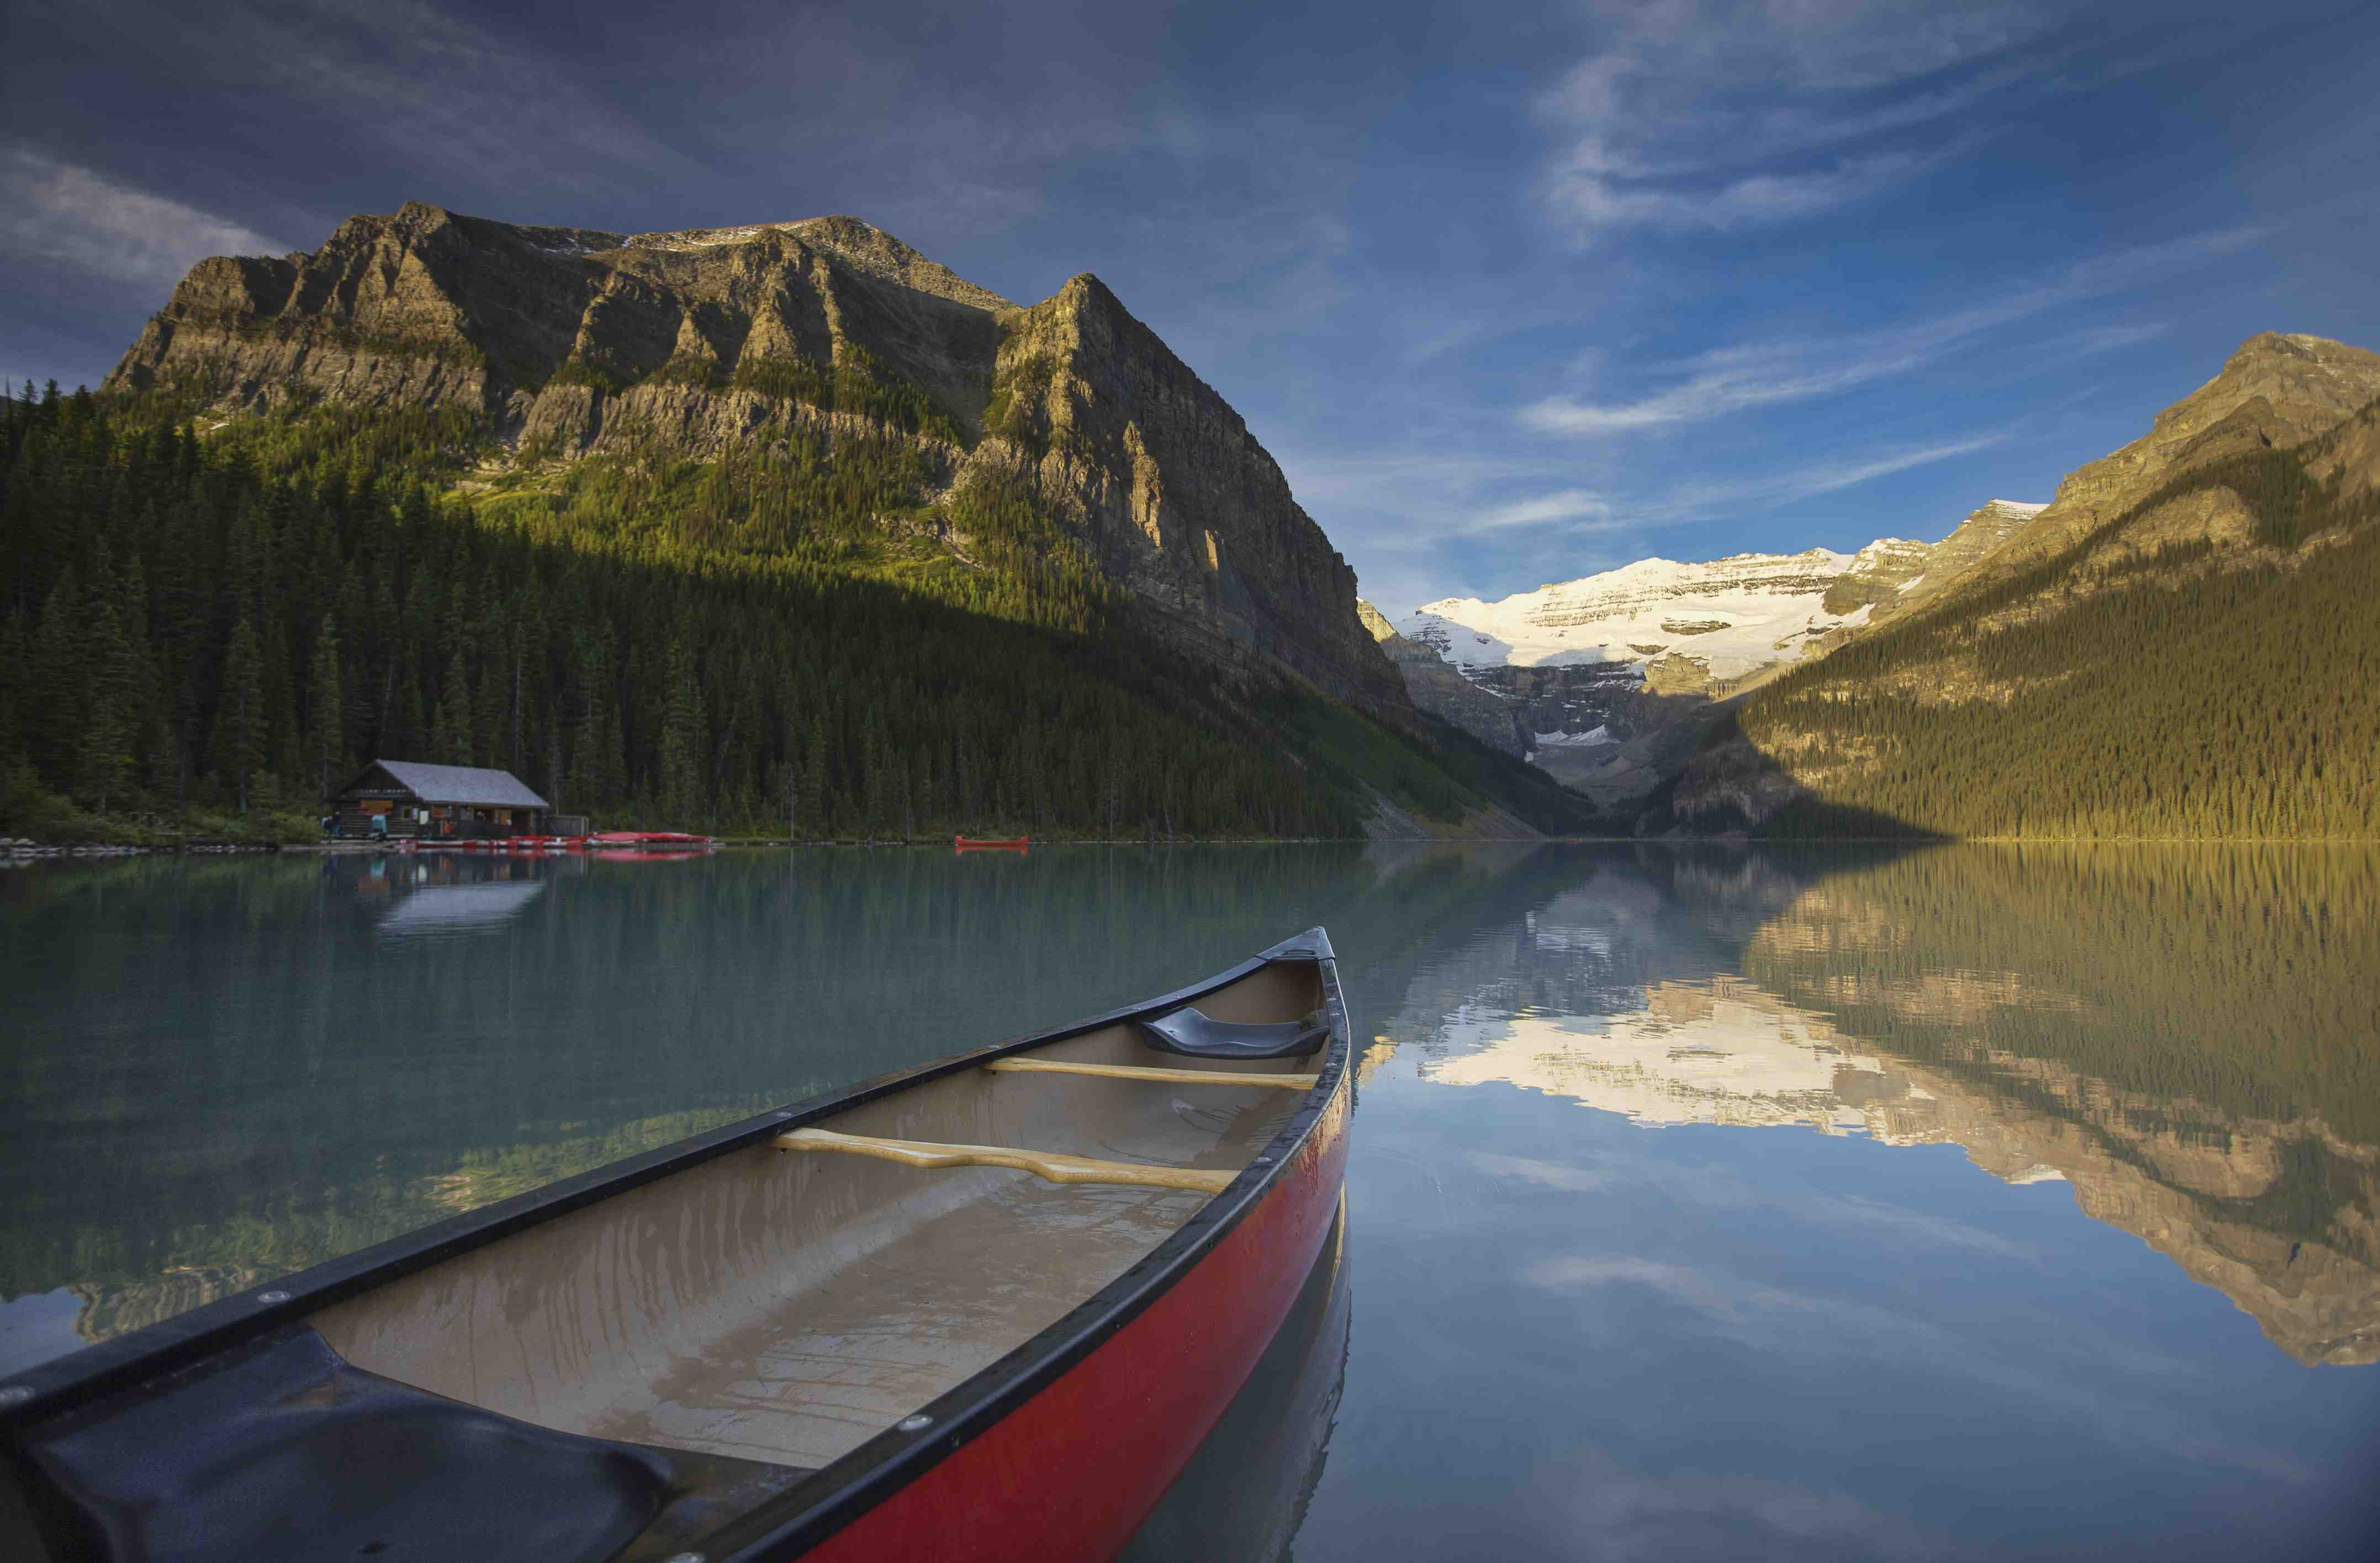 Find your own secluded lake in Banff's National Park (EnjoyBanff.com) Photo credit: Paul Zizka, Banff Lake Louise Tourism